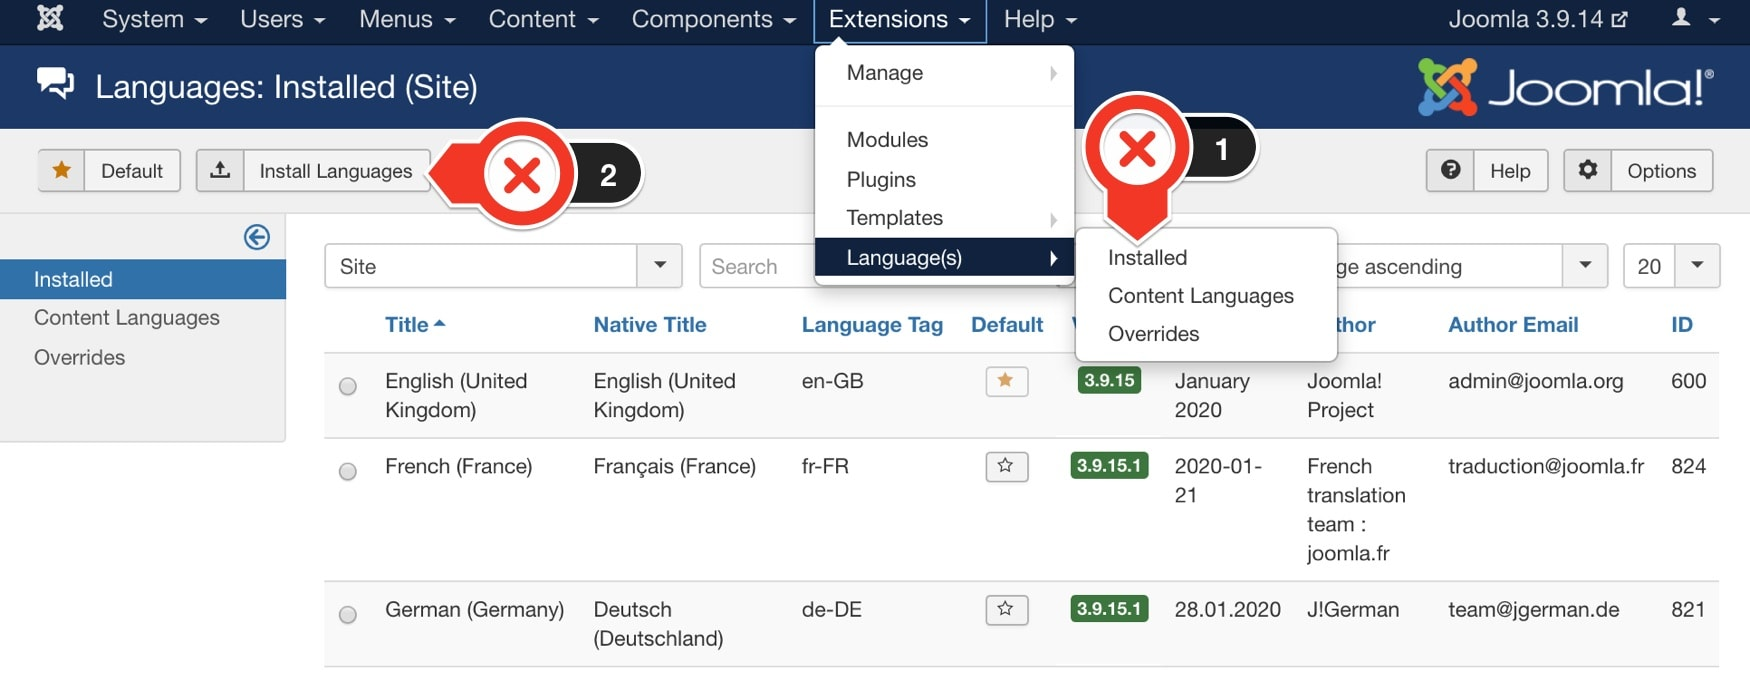 Install new languages In Joomla